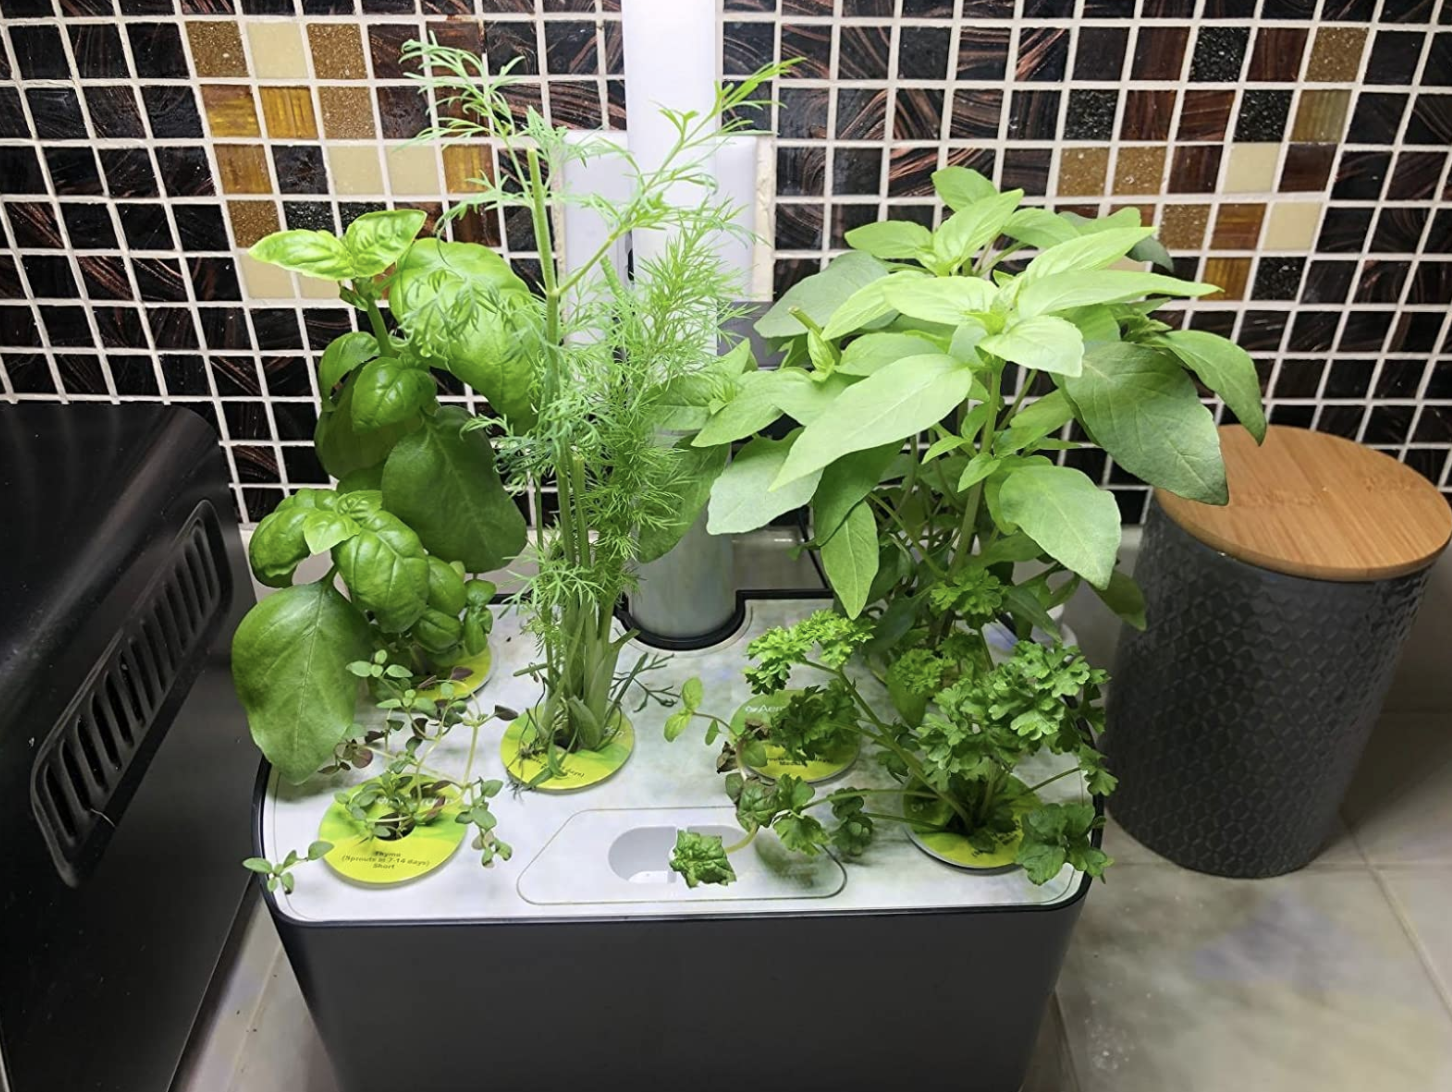 Reviewer's AeroGarden on their counter with tons of fresh herbs that have grown